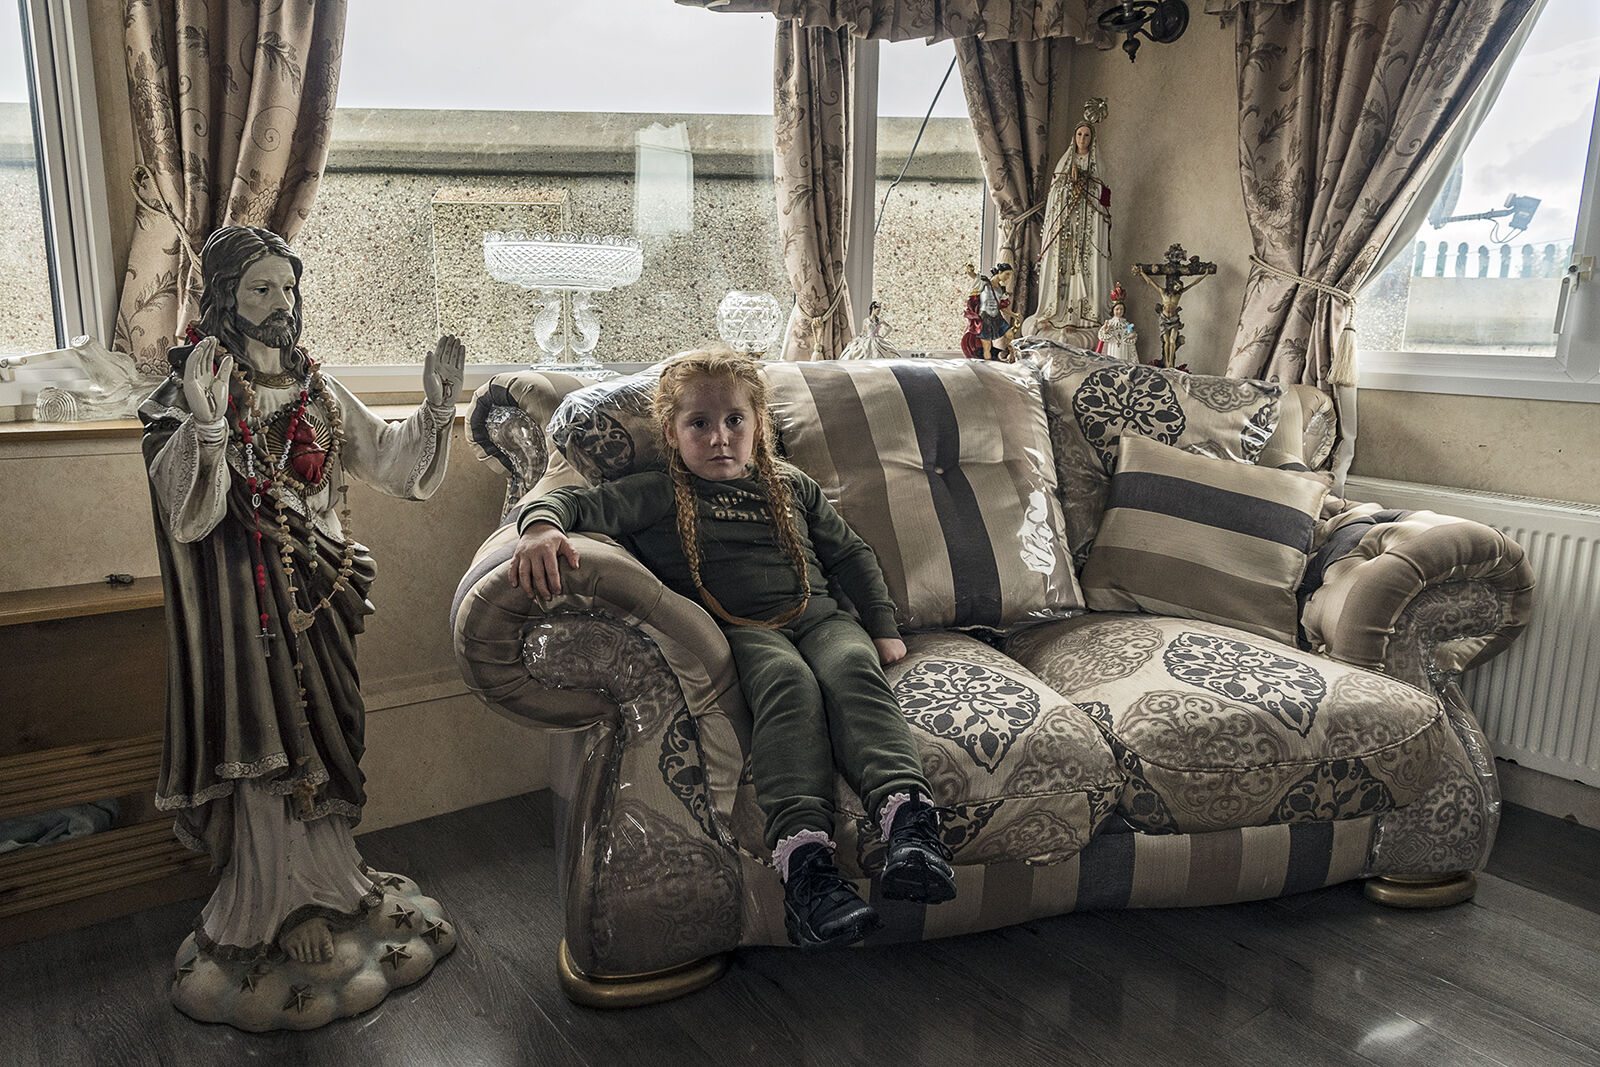 Girl on Couch, Galway, Ireland 2019